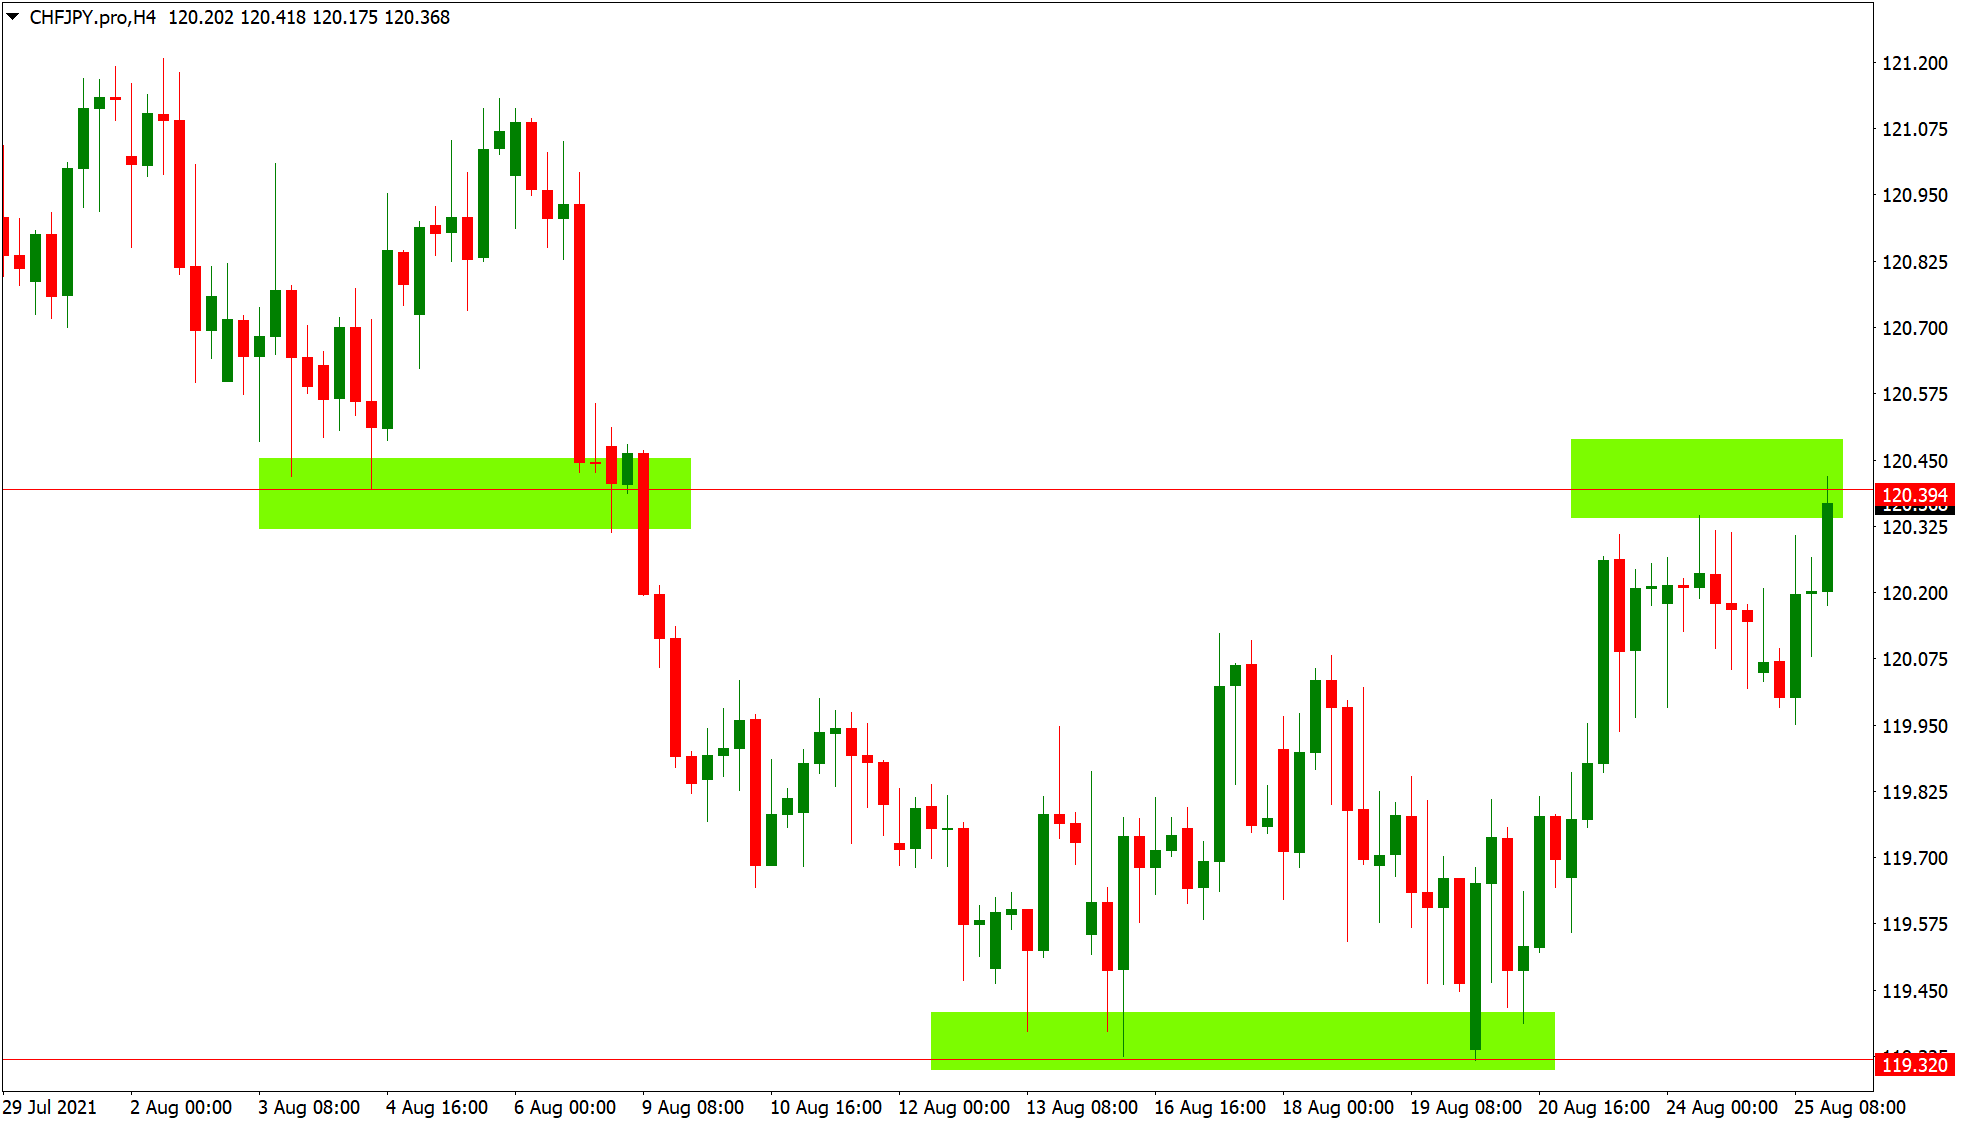 Support and resistance levels on a chart